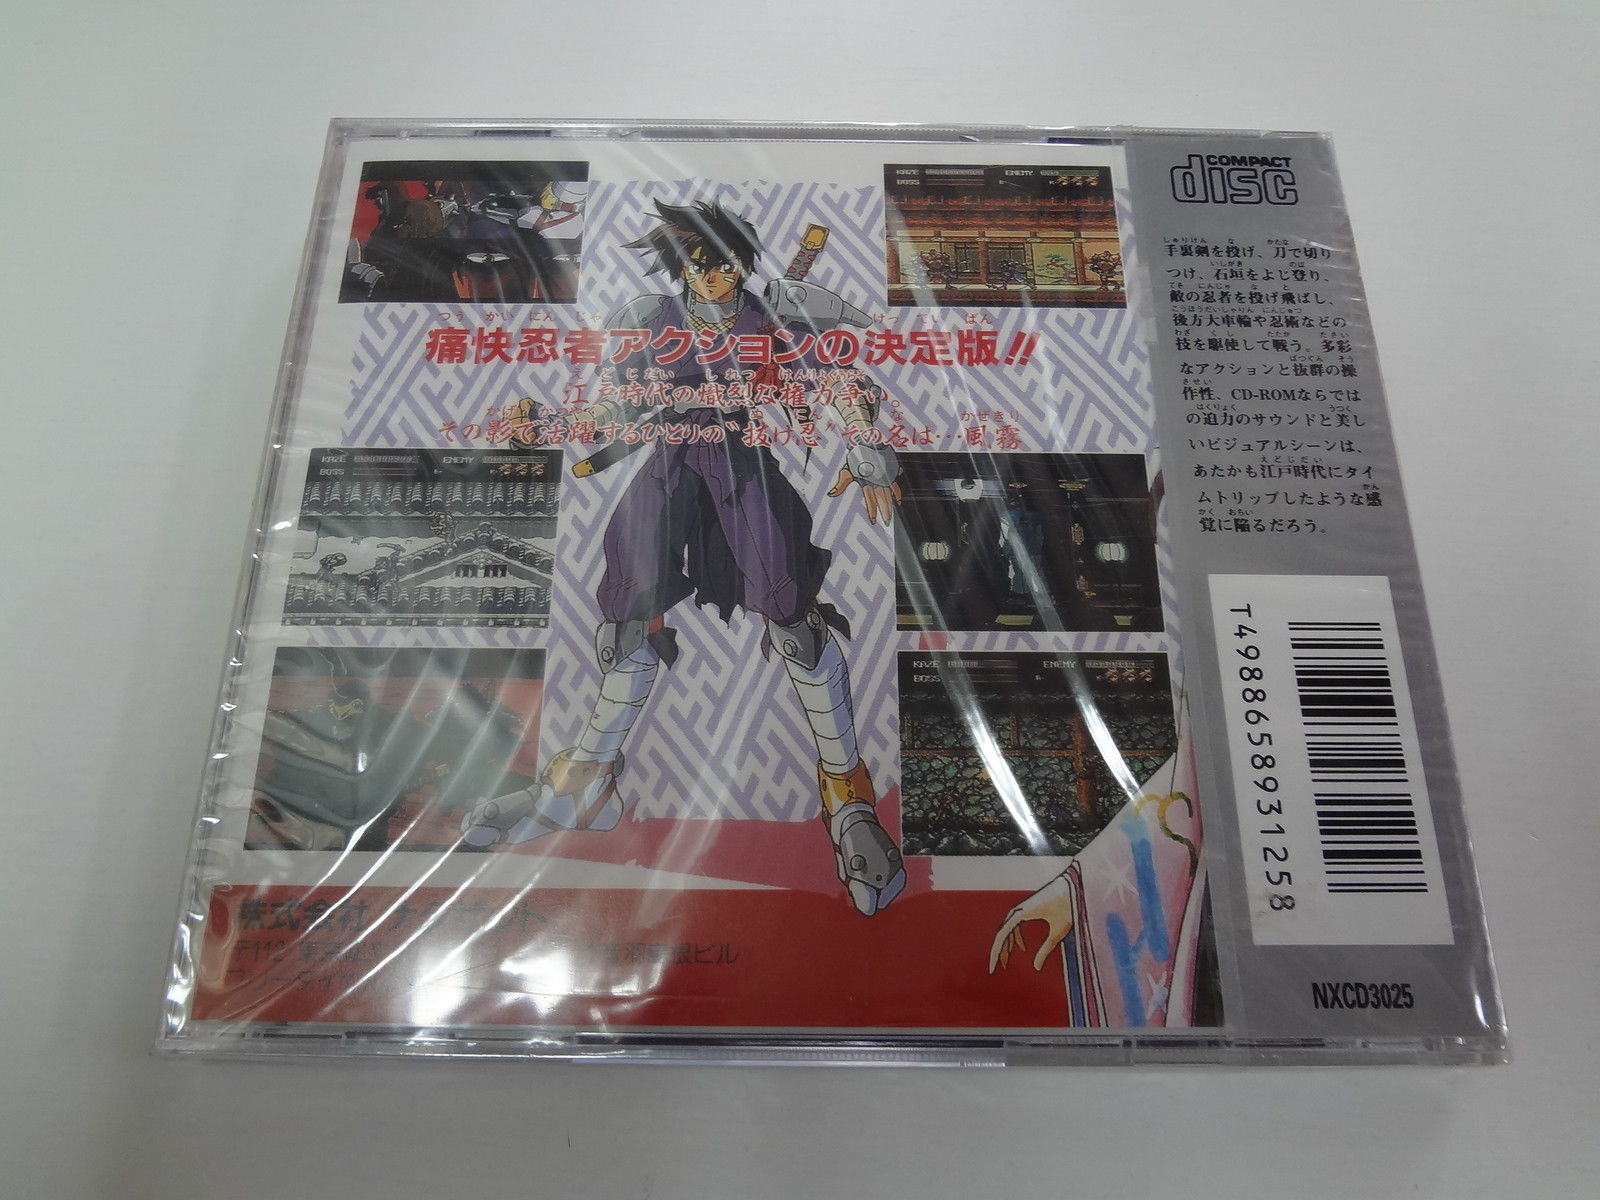 Kaze Kiri NEC PC Engine CD-Rom NEW